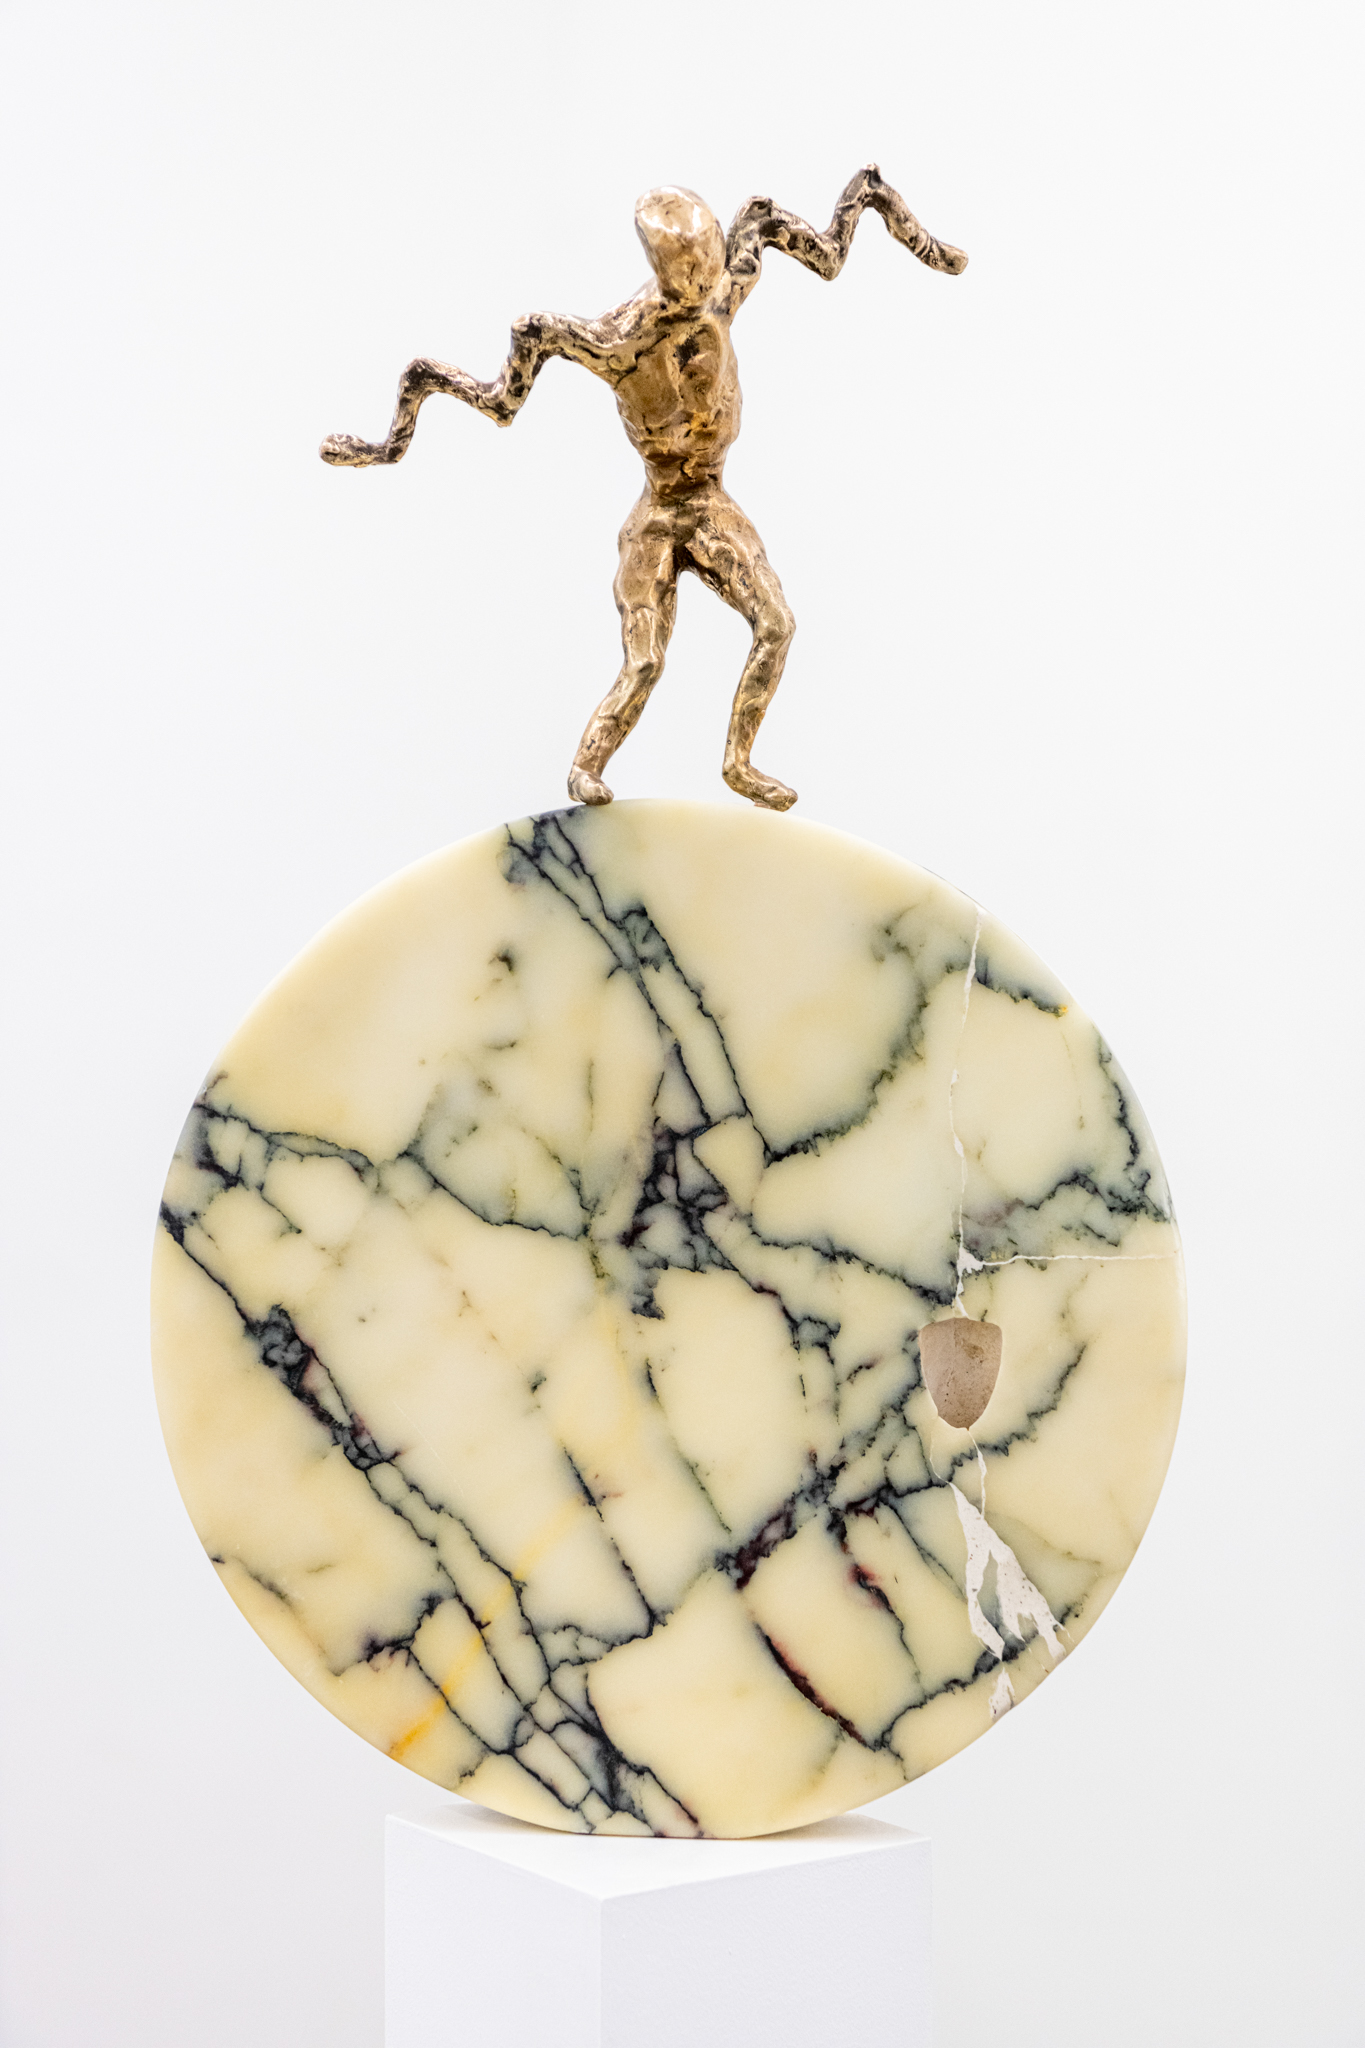 Sculpture Marble Moon with Jumper, 65 x